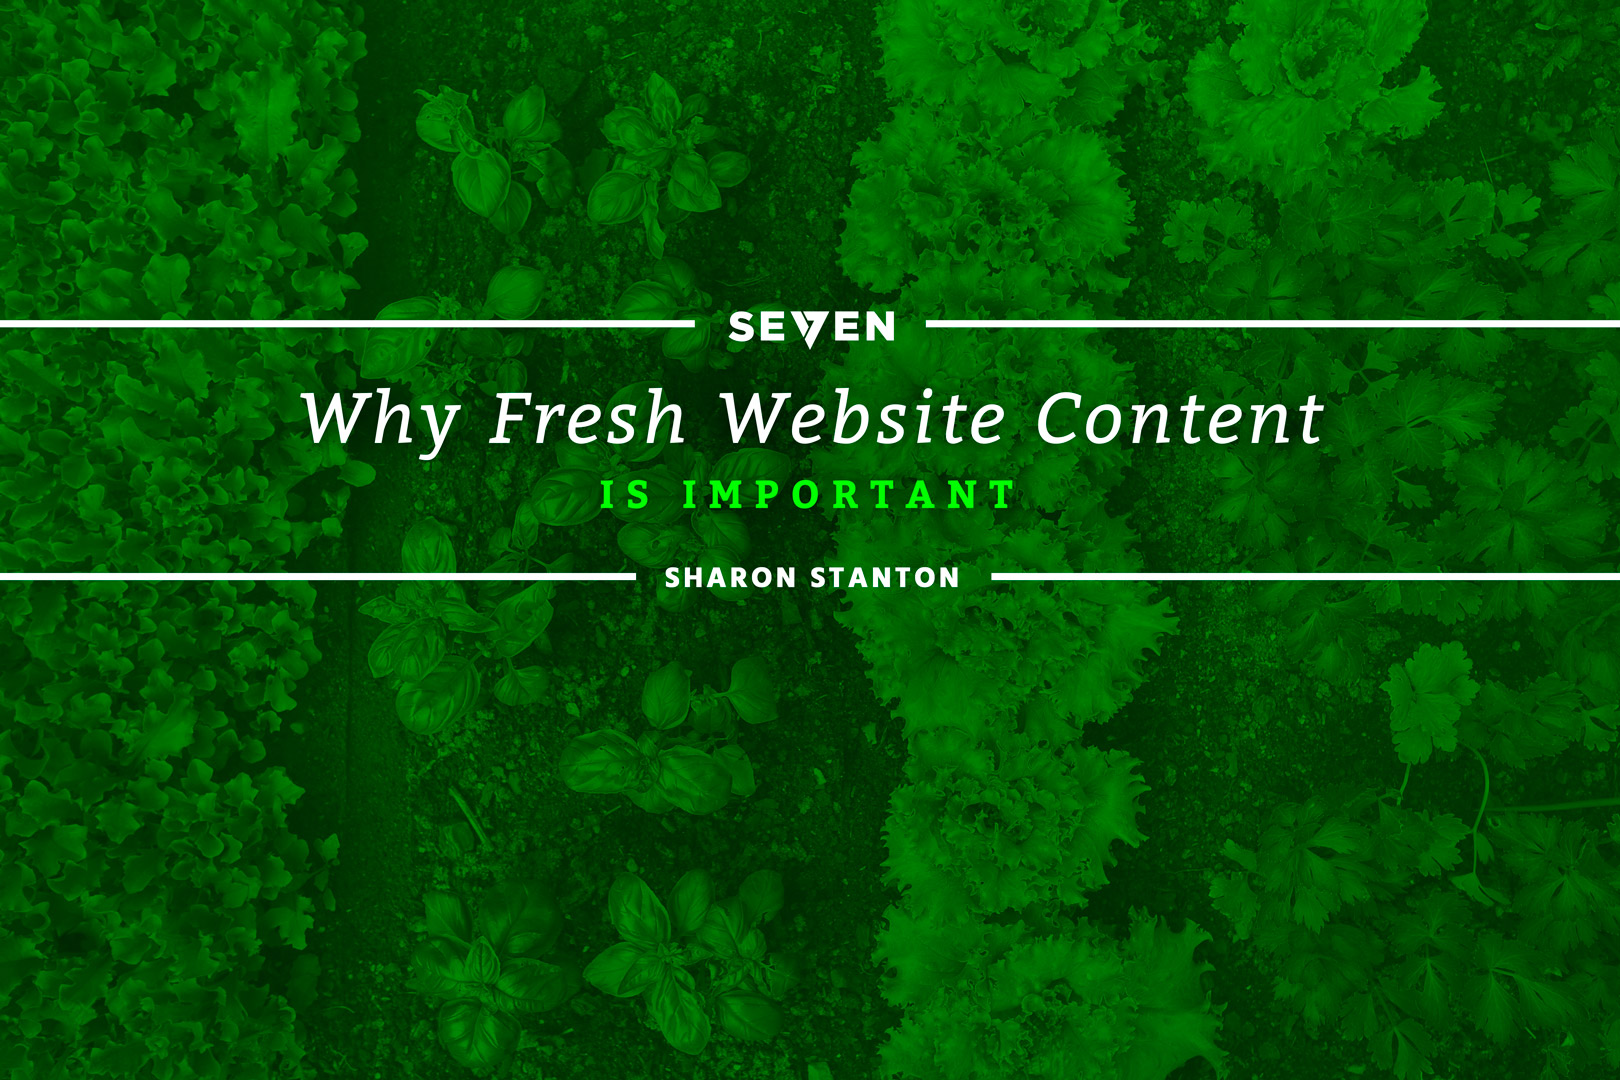 Why Fresh Website Content is Important